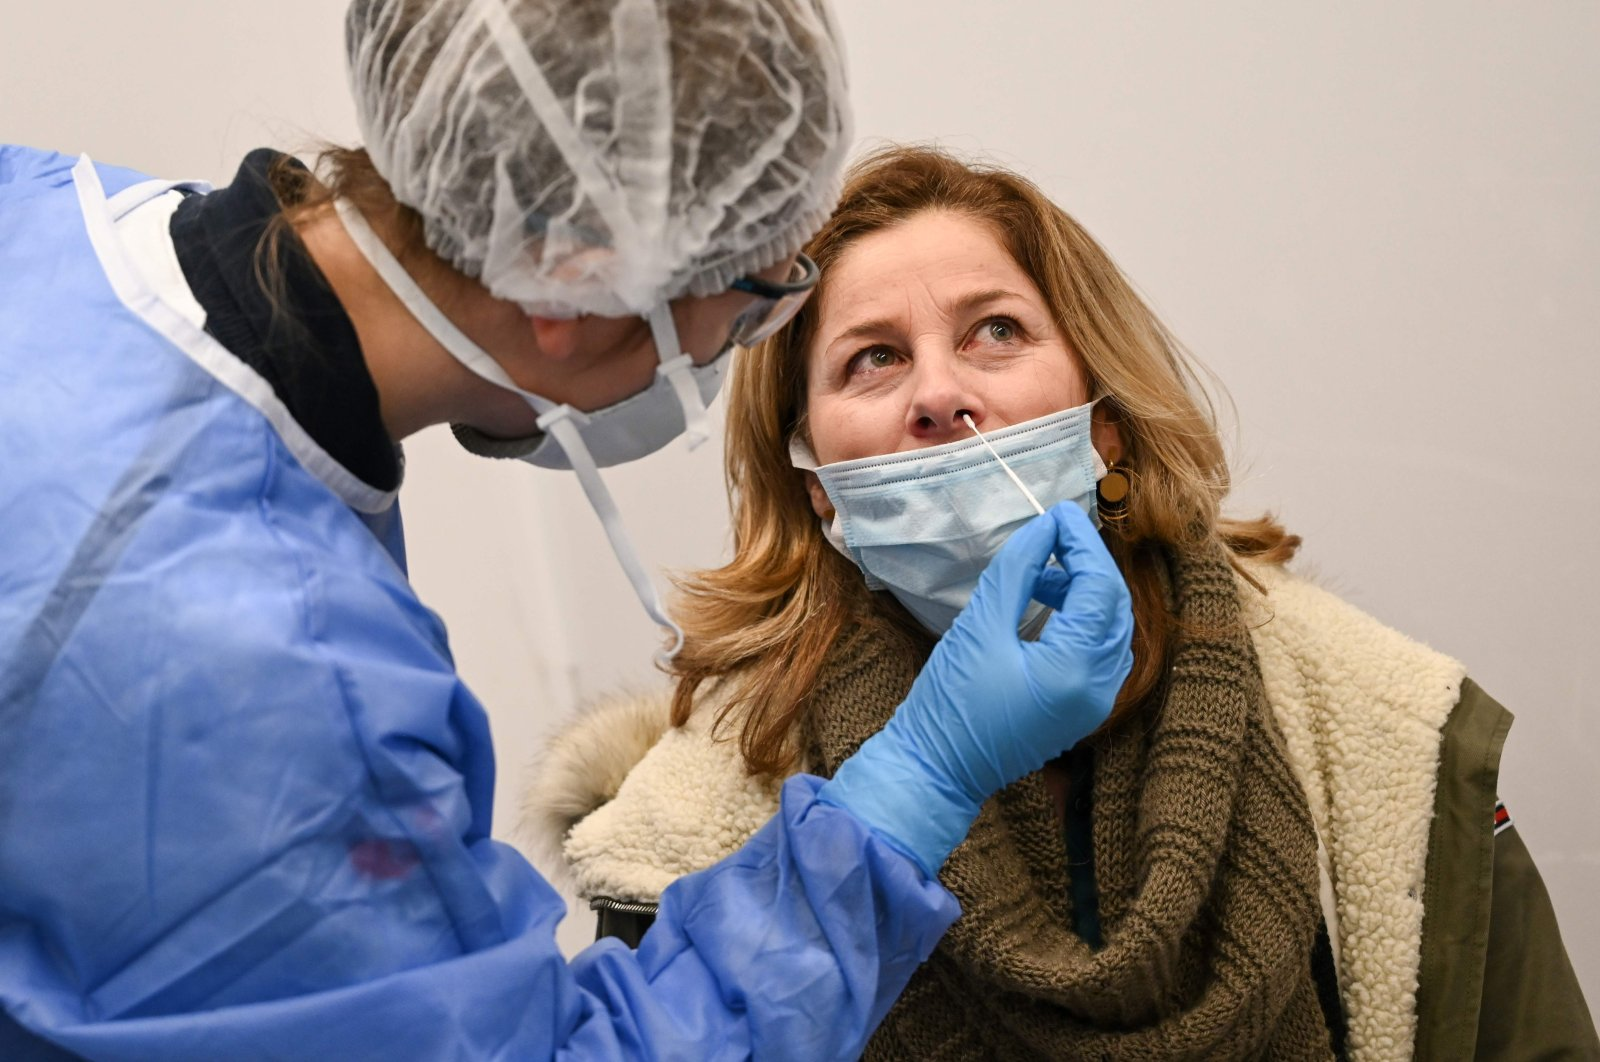 A medical worker uses a swab to perform a diagnostic PCR test for COVID-19 on an arriving passenger at a testing booth in Roissy-Charles de Gaulle Airport, north-east of Paris, France, Feb. 13, 2021. (AFP Photo)